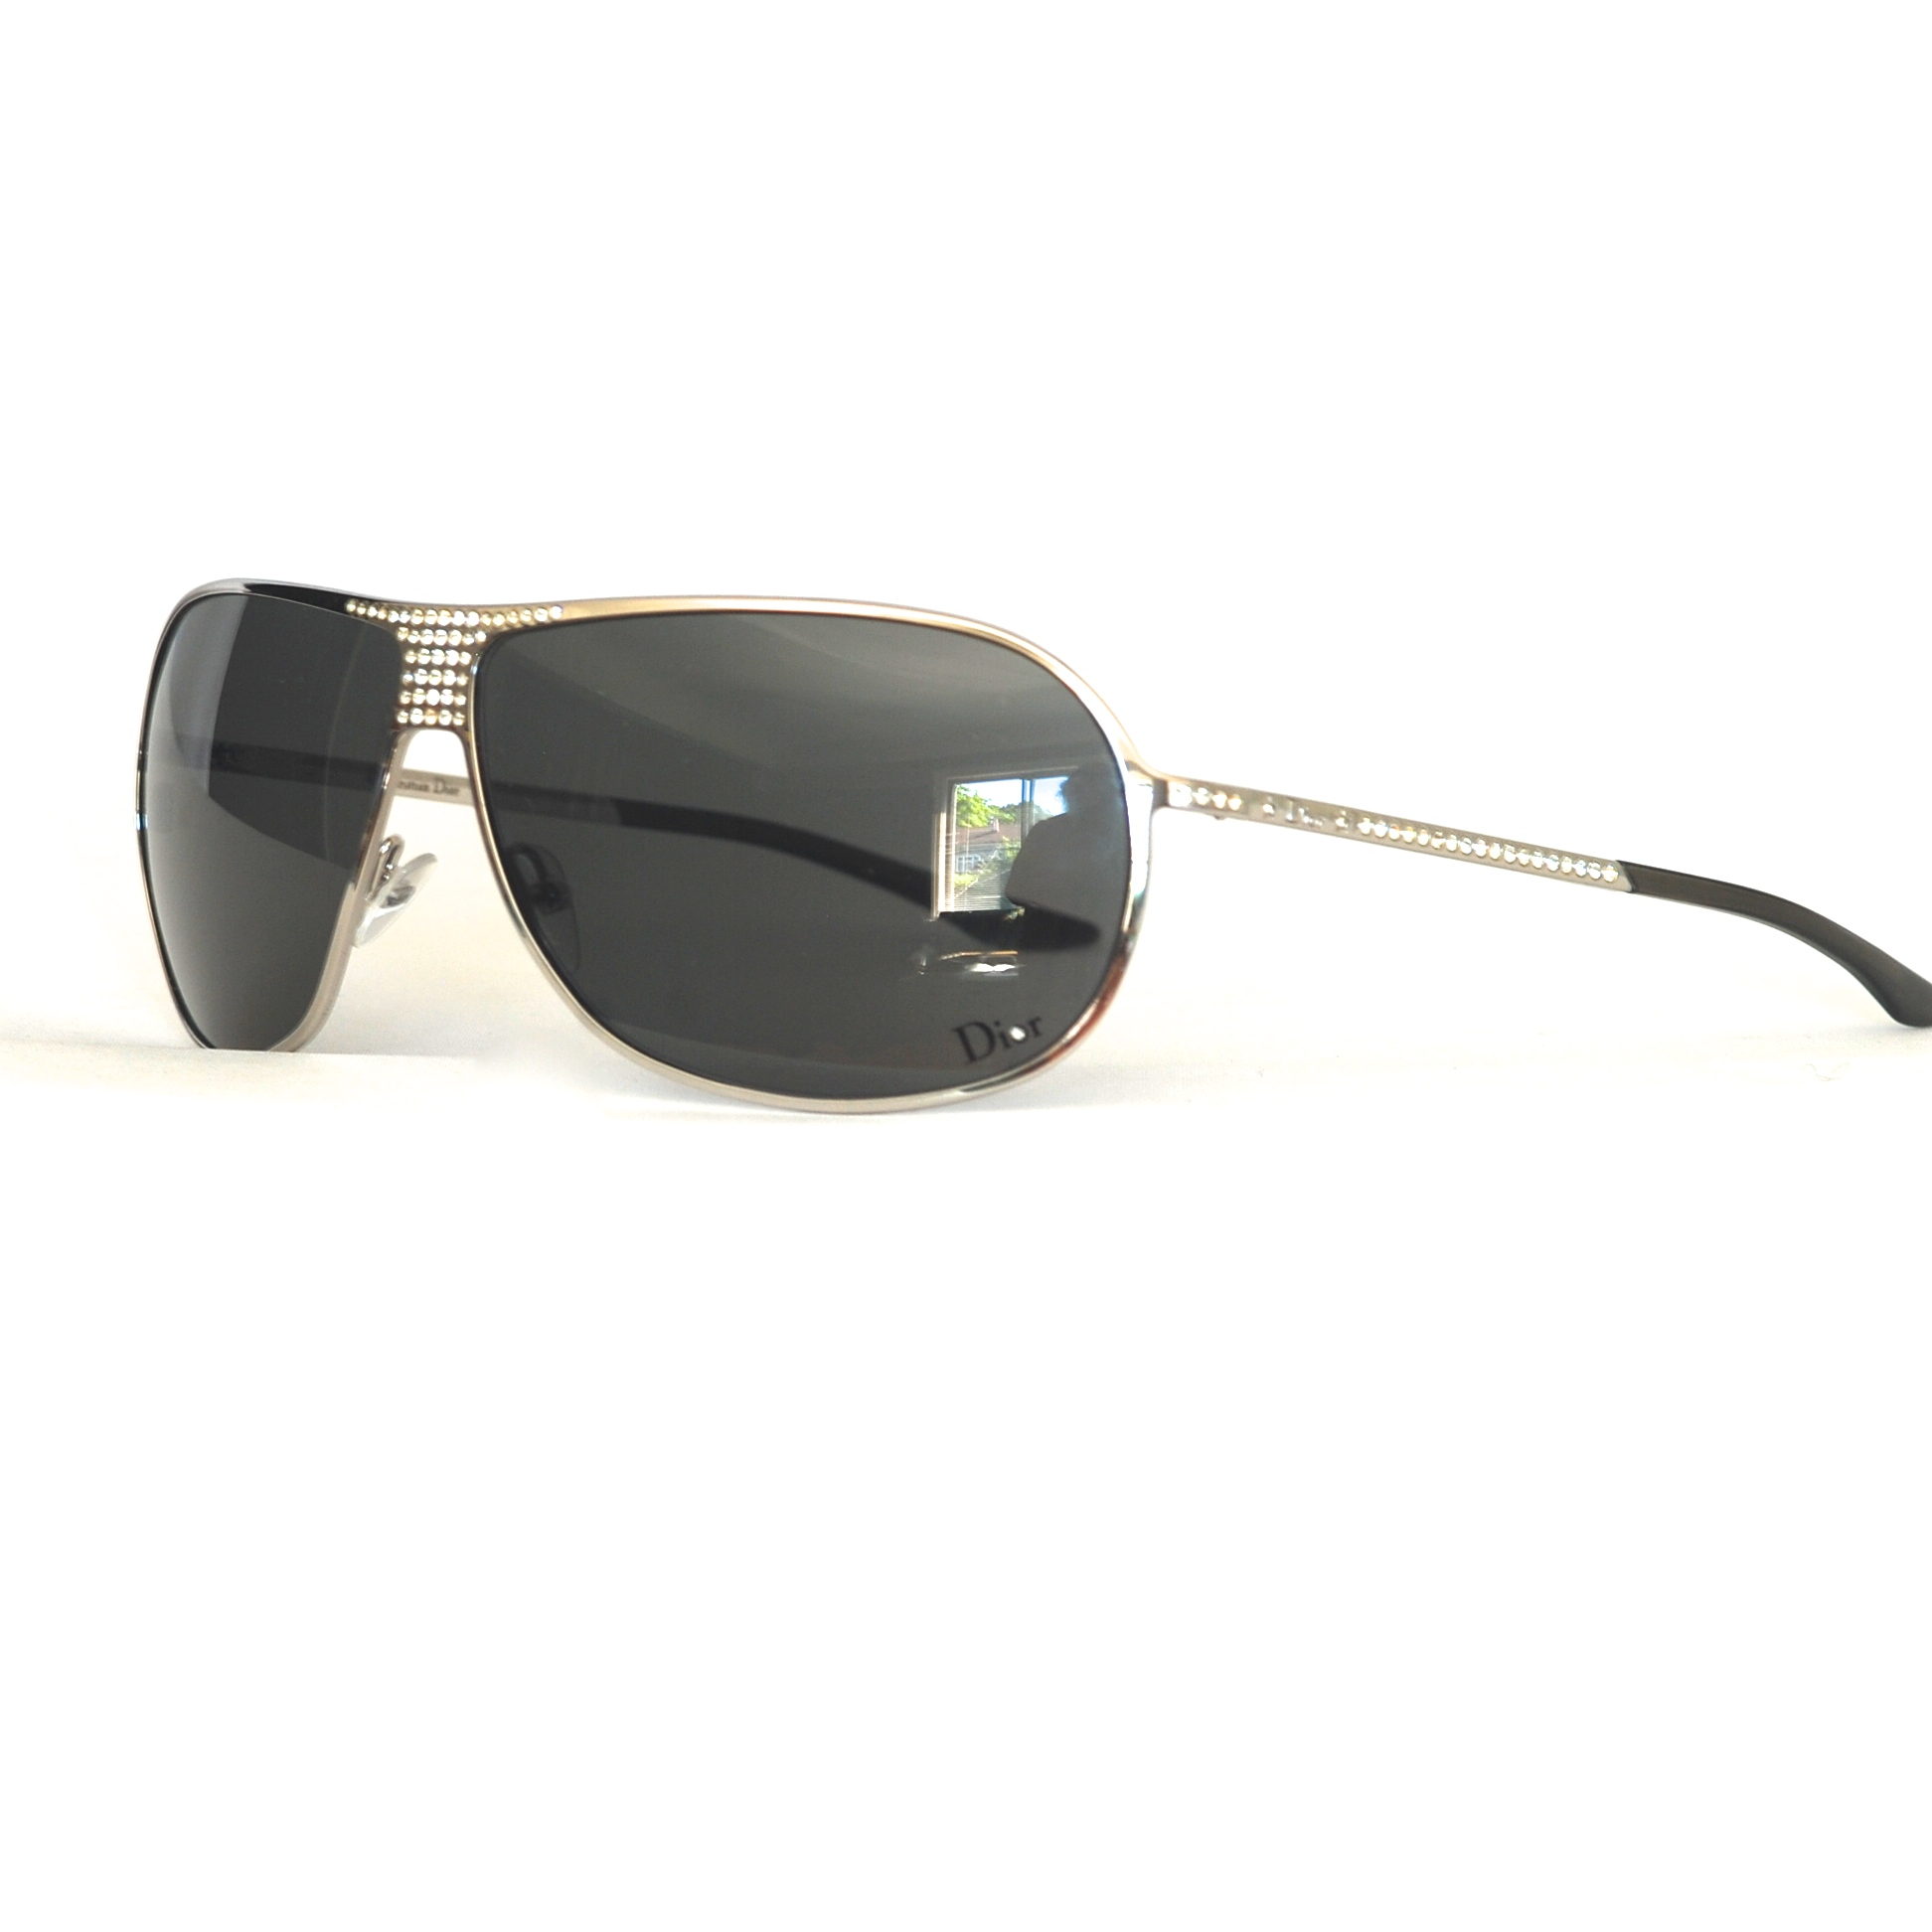 Christian Dior Silver Tone With Sparkle Large Frame Sunglasses ...